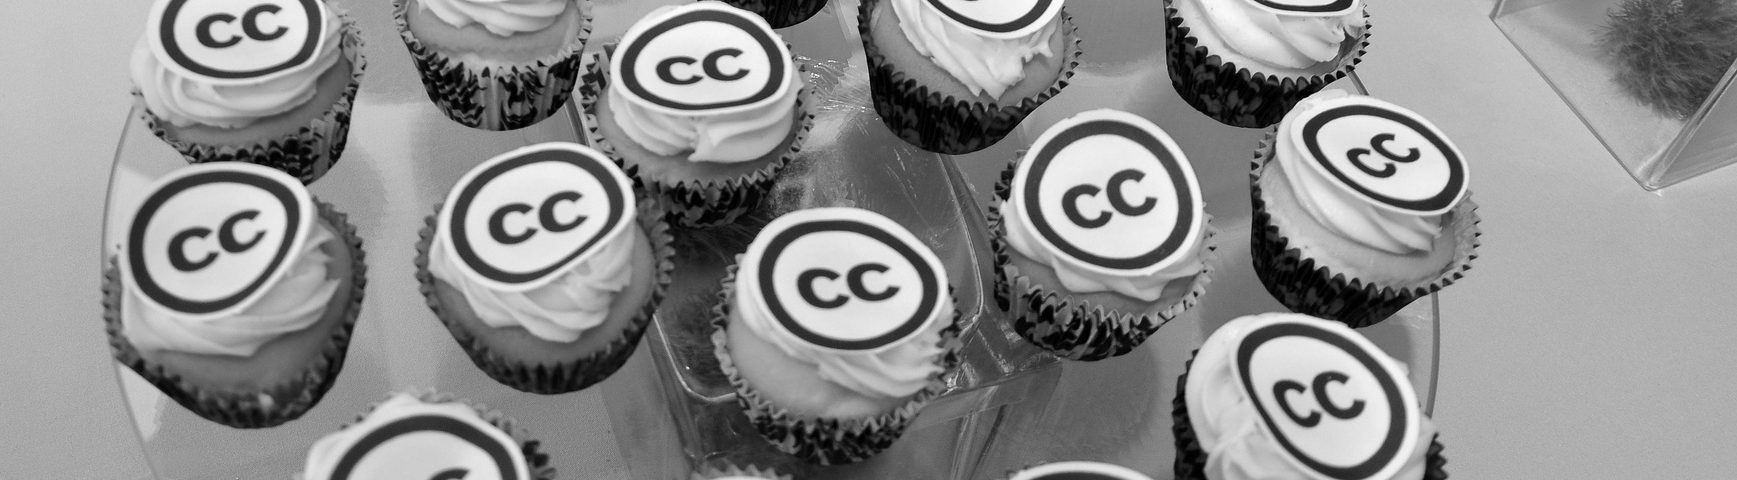 Creatice Commons cupcakes. Original by Timothy Vollmer on Flickr.